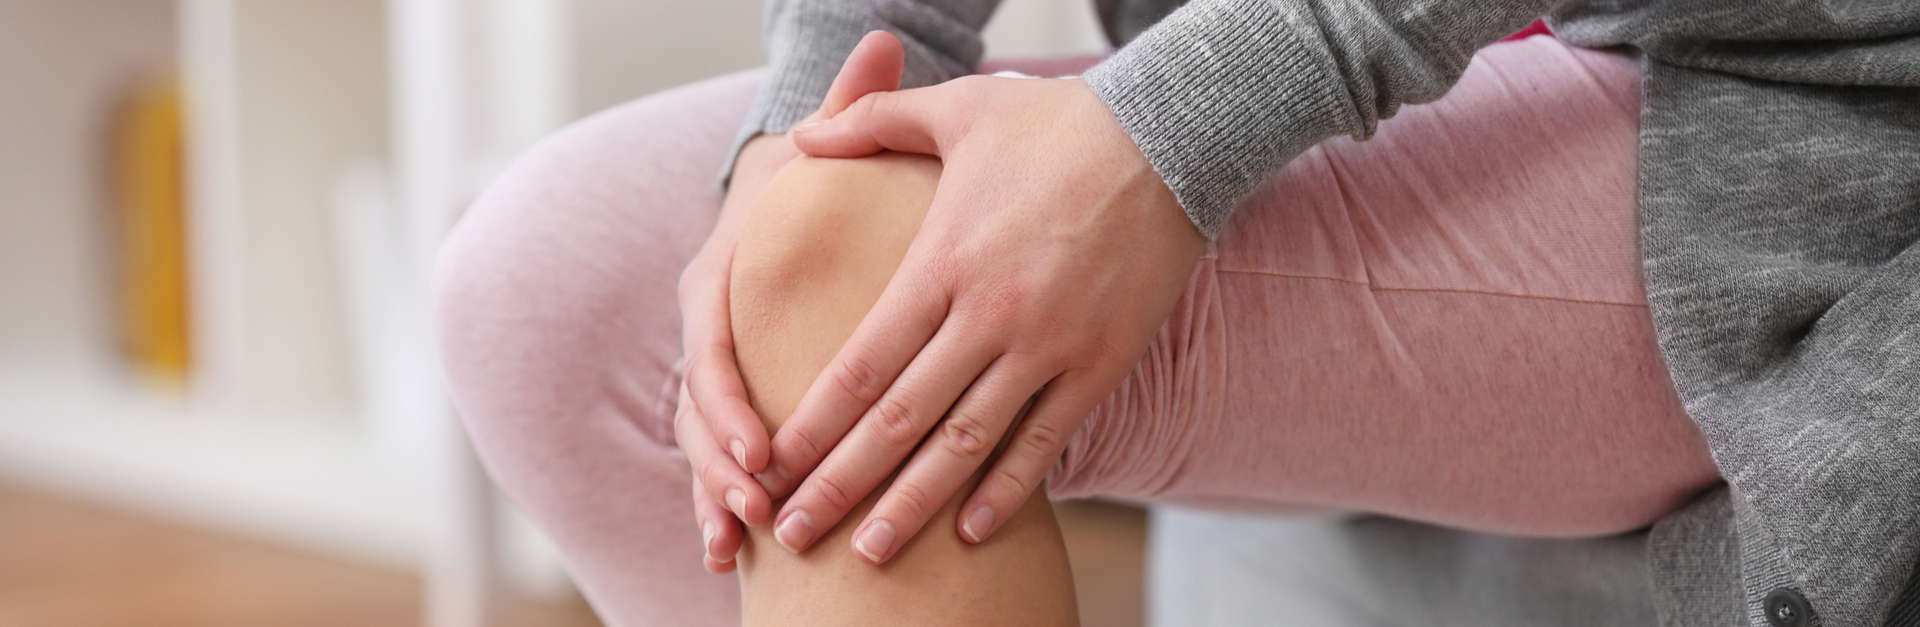 How You Know It's Time to See a Doctor for Joint Pain